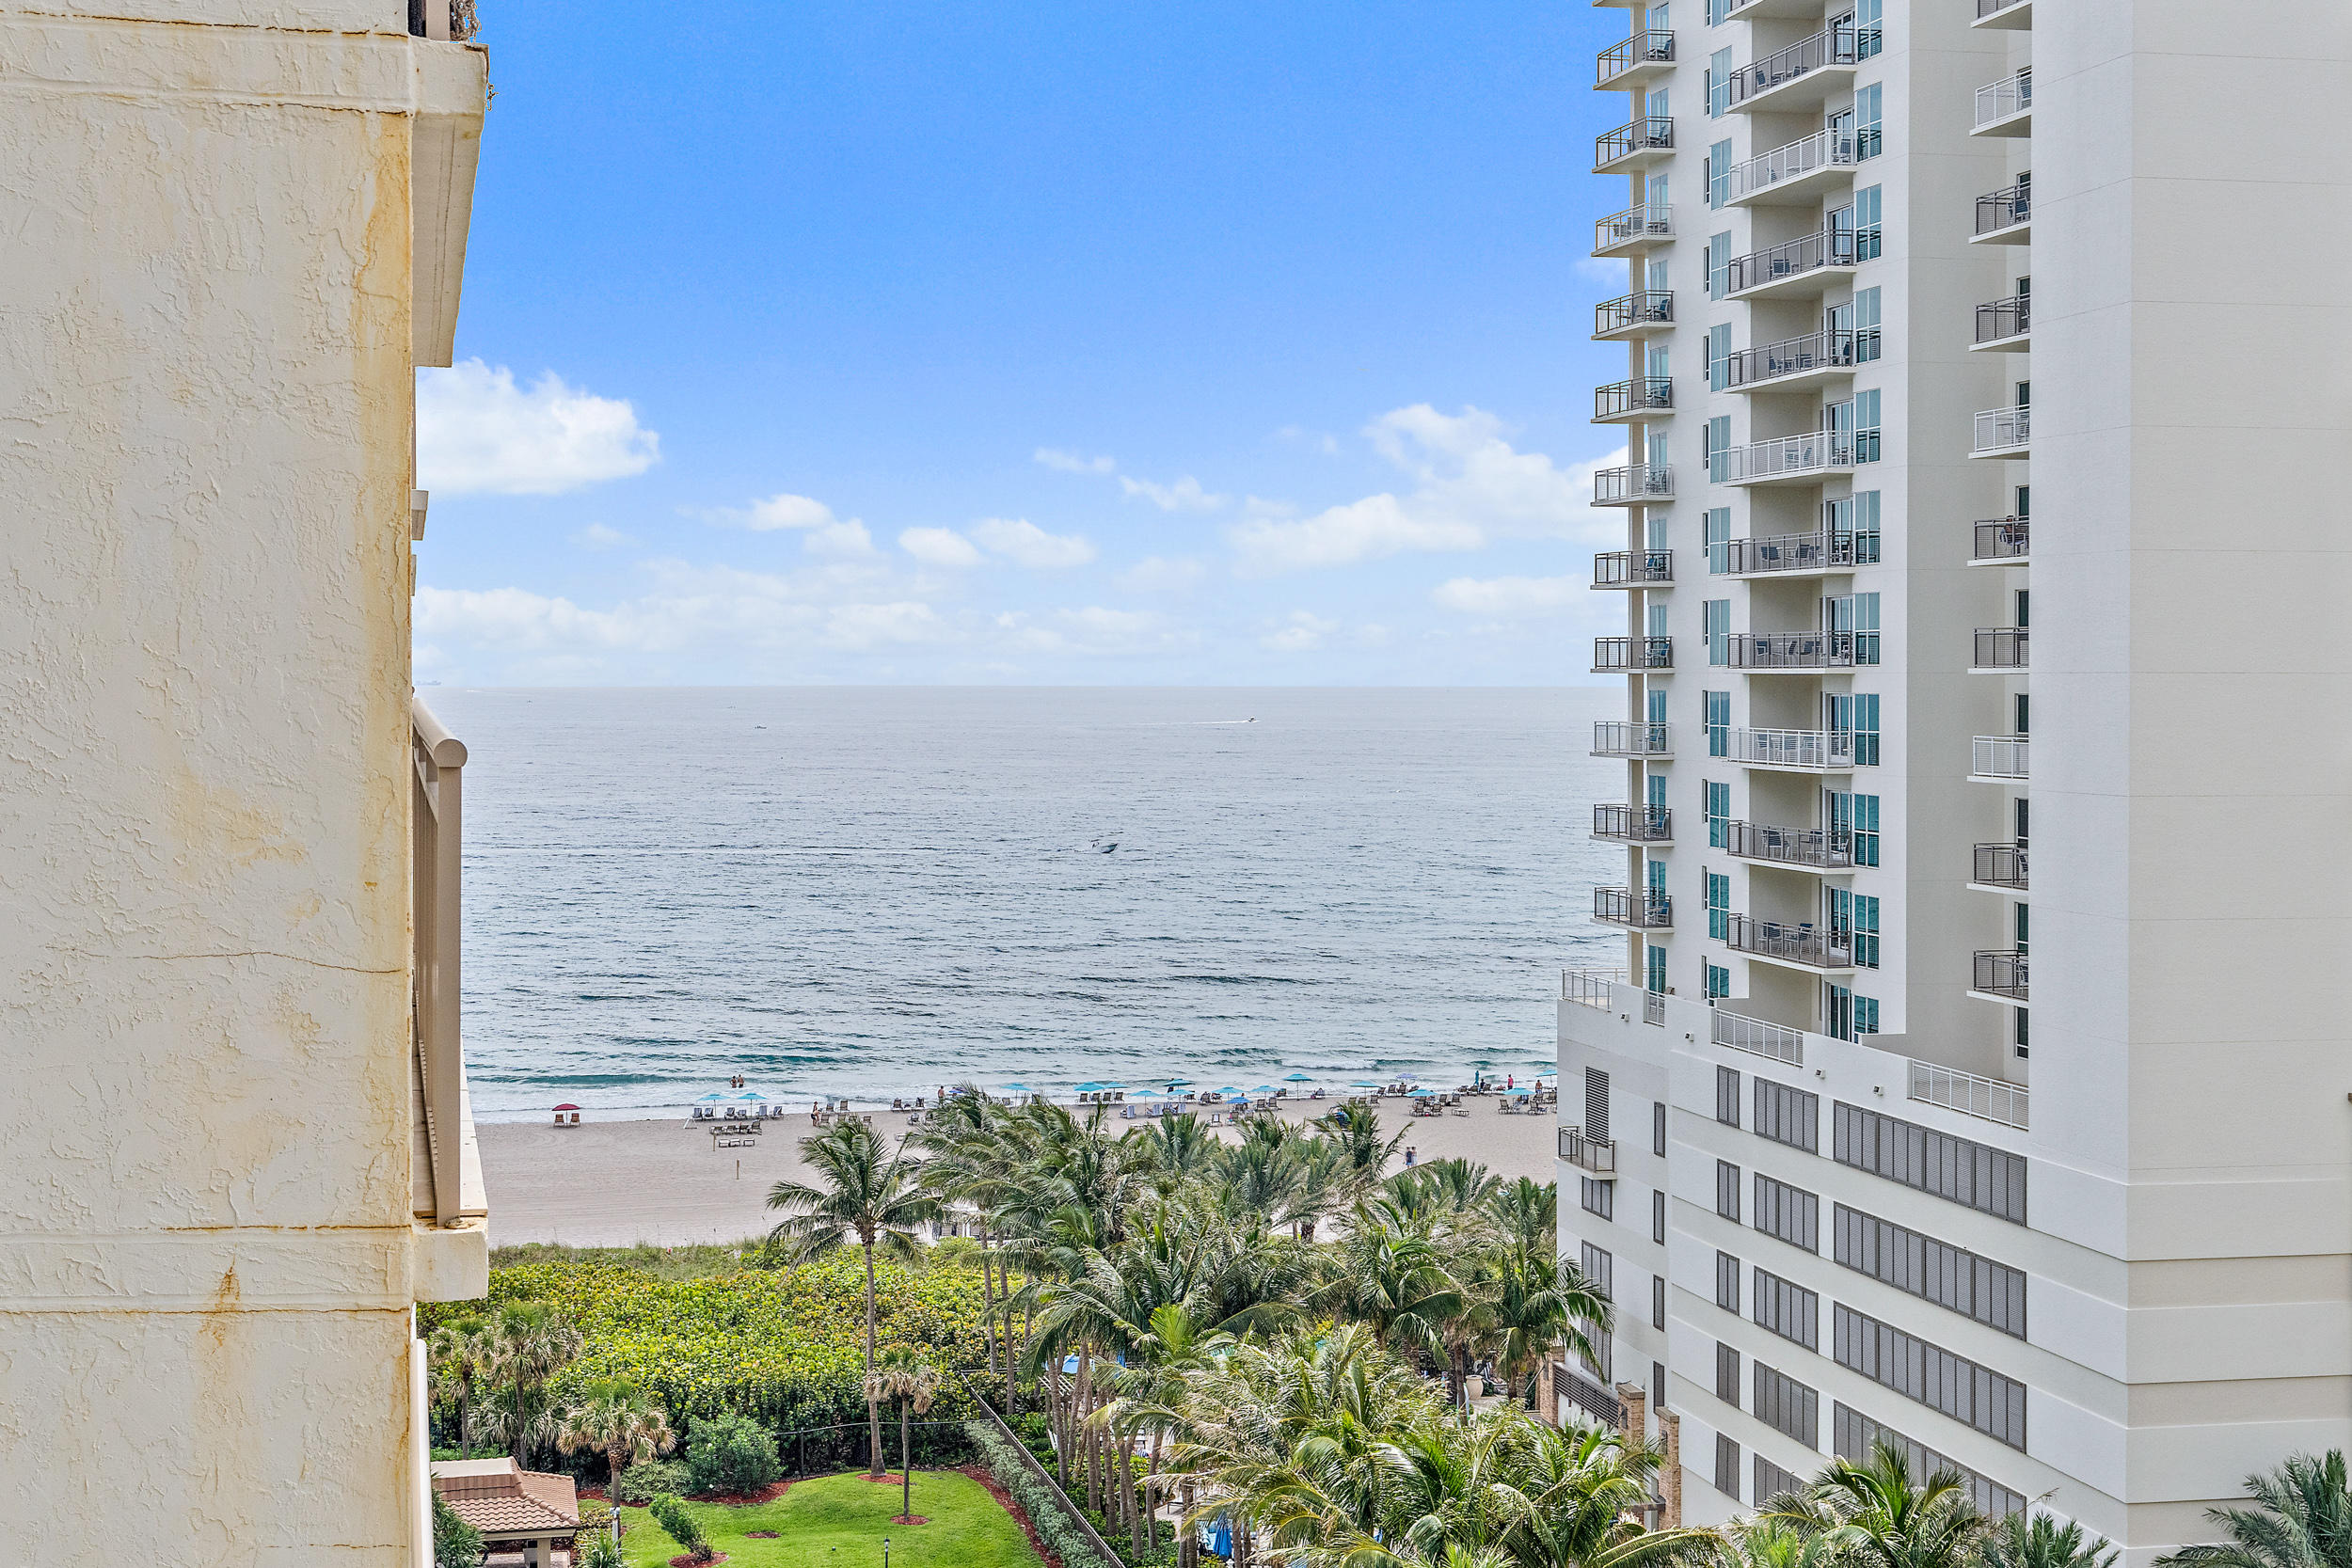 This well-cared for southwest corner condo has beautiful views of the night lights over the city as well as the ocean views from the terrace and Intracoastal Waterway from the living area and second bedroom. Oceantree is well-known for its lushly landscaped sprawling grounds. For those who enjoy an active lifestyle there are 3 tennis courts. The split bedroom floor plan offers 1,479 square feet of airconditioned living area, a spacious wrap-a-round terrace, newer appliances including brand new refrigerator and 2 year old dishwasher. There is a full appliance Climate Control warranty that is good until 3/17/2022. The floor to ceiling sliding doors are all hurricane impact glass and there is a parking garage. Umbrella and beach chair service included in HOA. Oceantree sits on three acres of beautifully landscaped grounds ideally situated on the beach at the southern end of Singer Island a short distance from the island shopping area and restaurants. Amenities include a wide sandy beach, beach service, two heated pools, Jacuzzi, Pavilions with barbecue grills, library-card room, exercise room, saunas, 3 tennis courts, 24 hour concierge service, and parking garage.